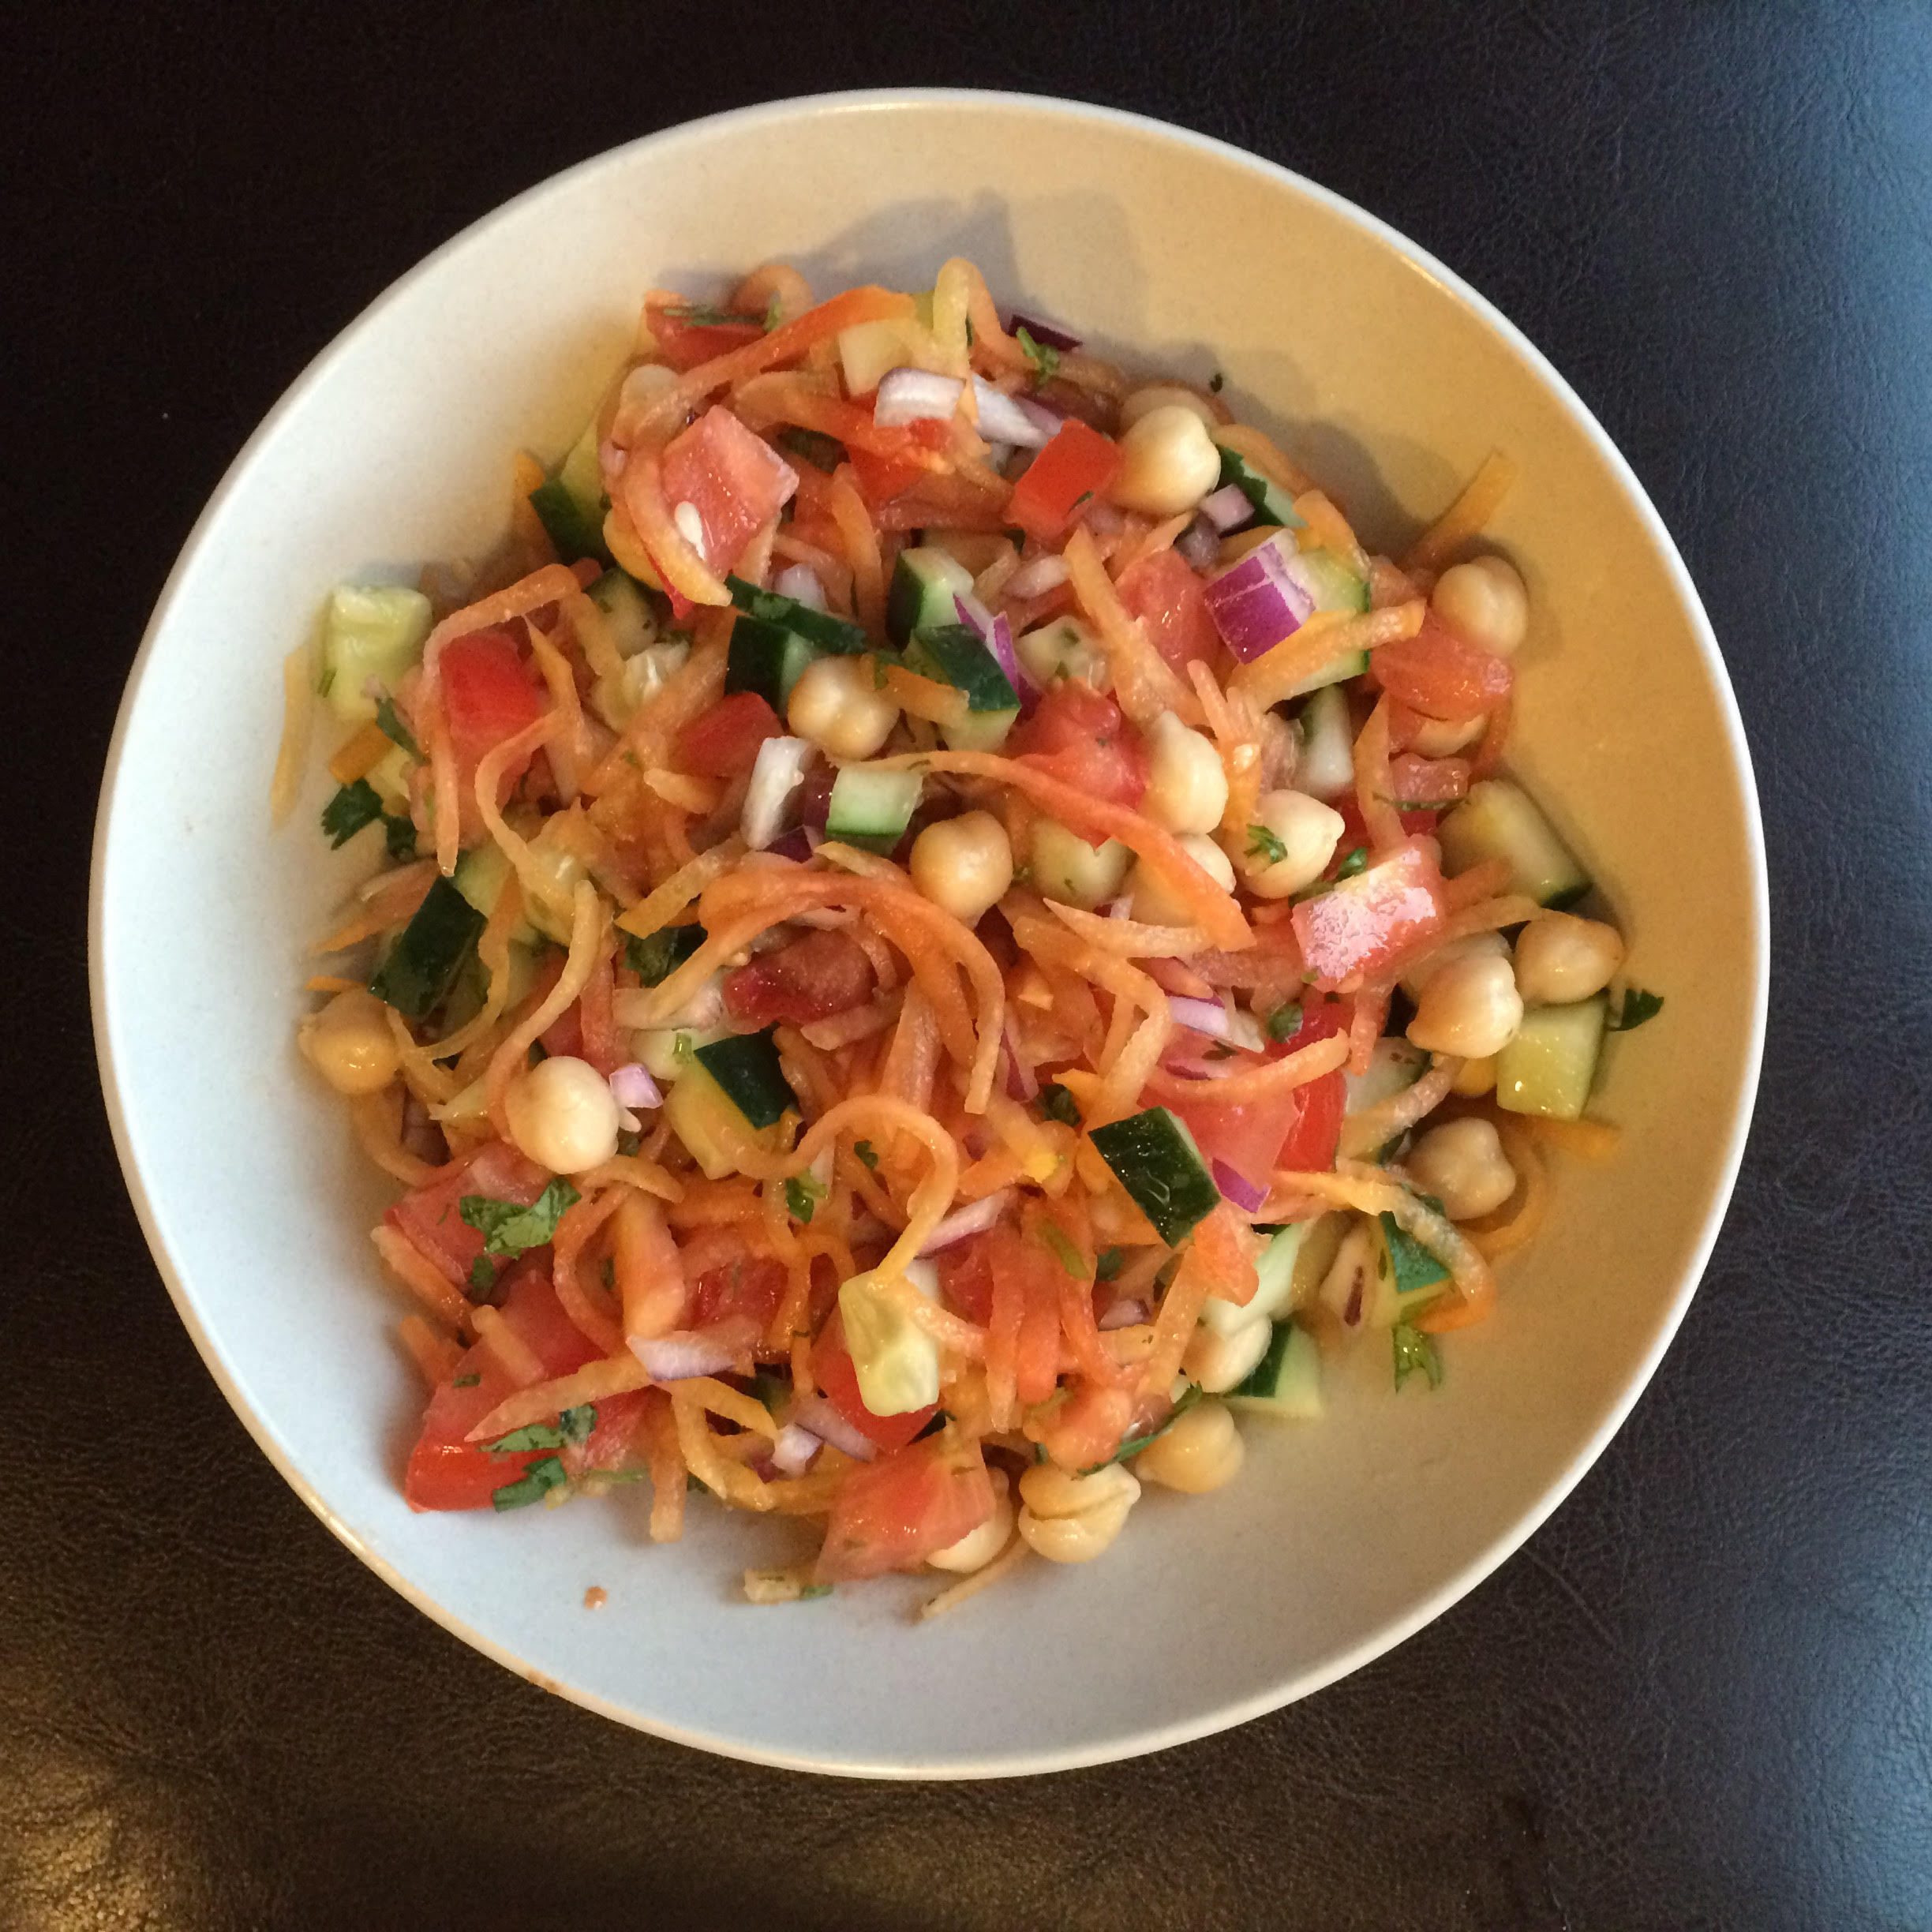 This was MY re-creation of the salad you see above! I've added chickpeas and cucumber to the traditional mix!